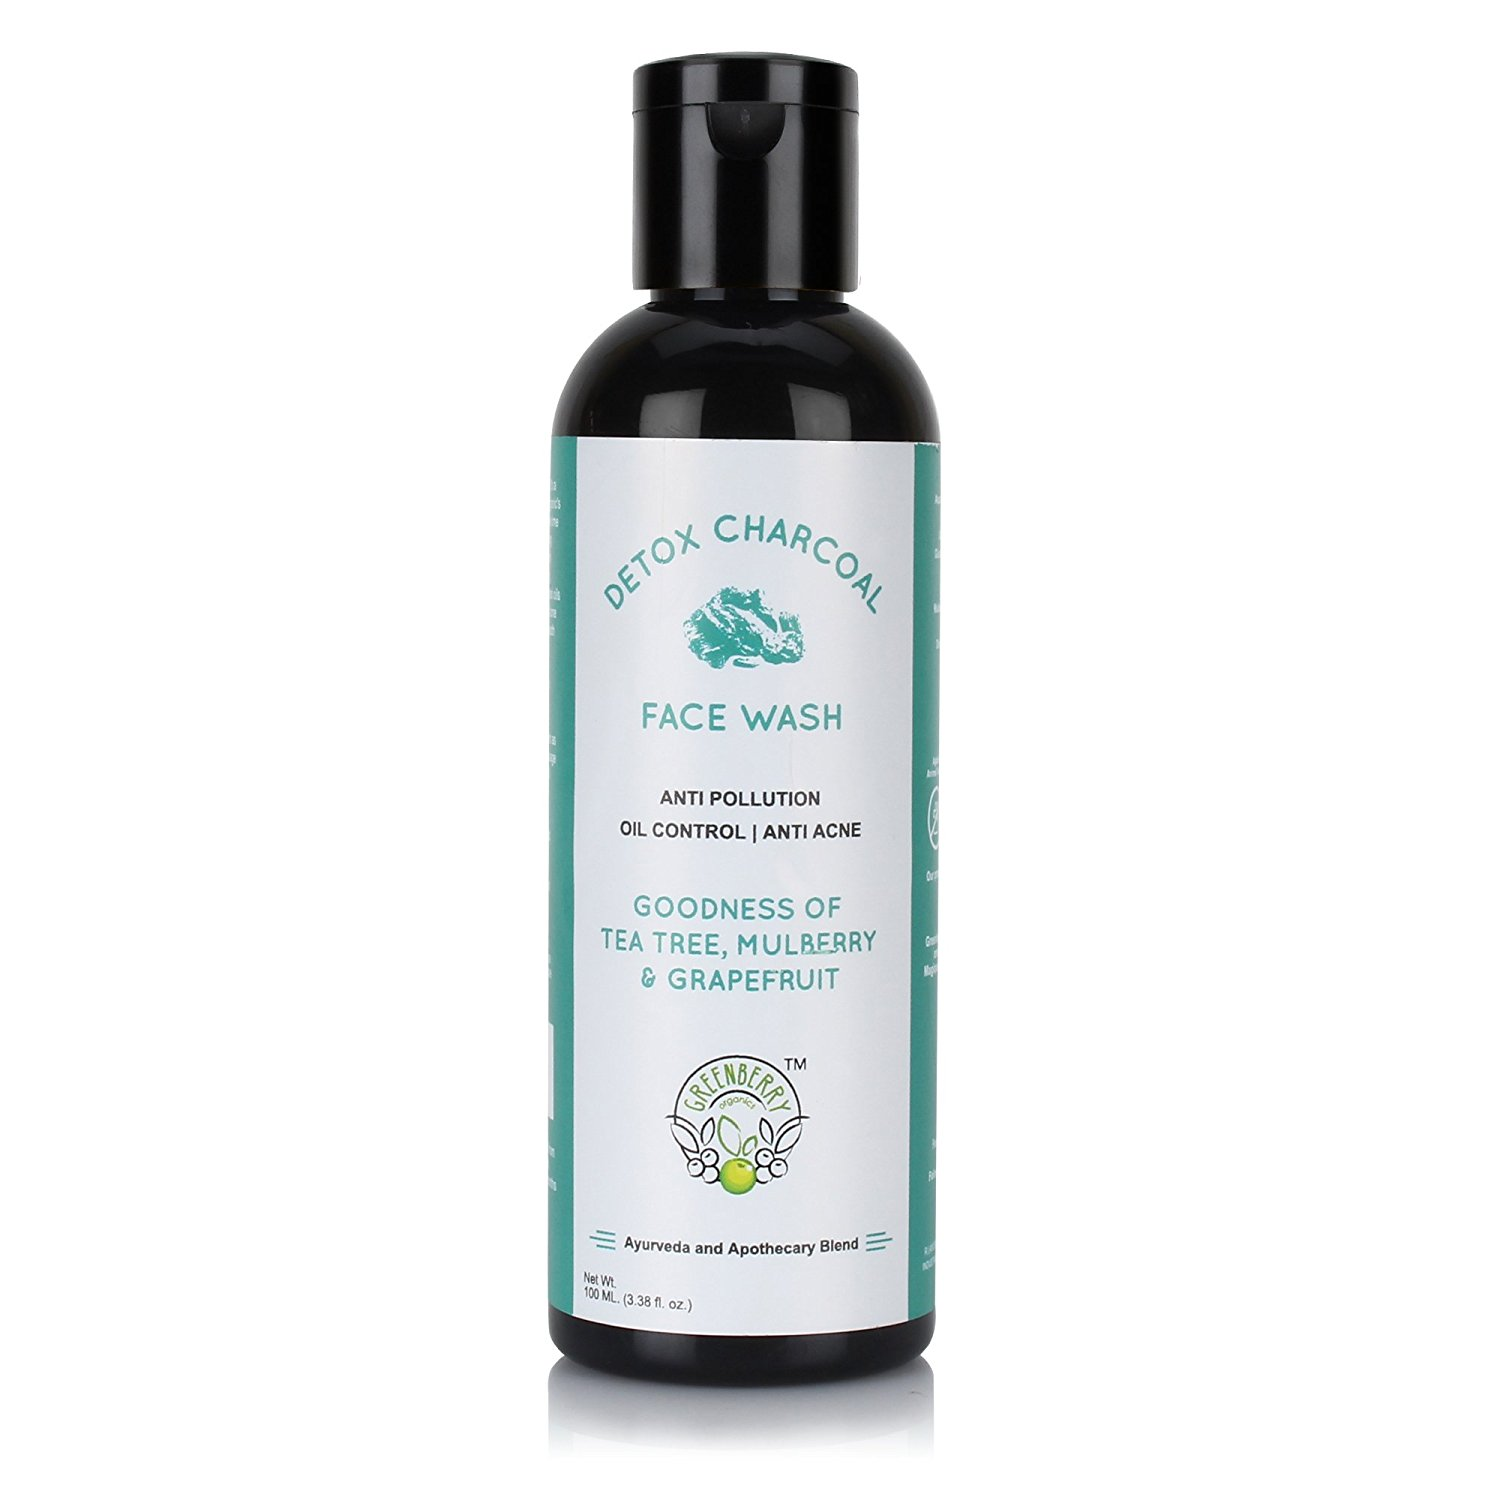 Greenberry Organics Detox Charcoal Face Wash Rs. 195 - Amazon